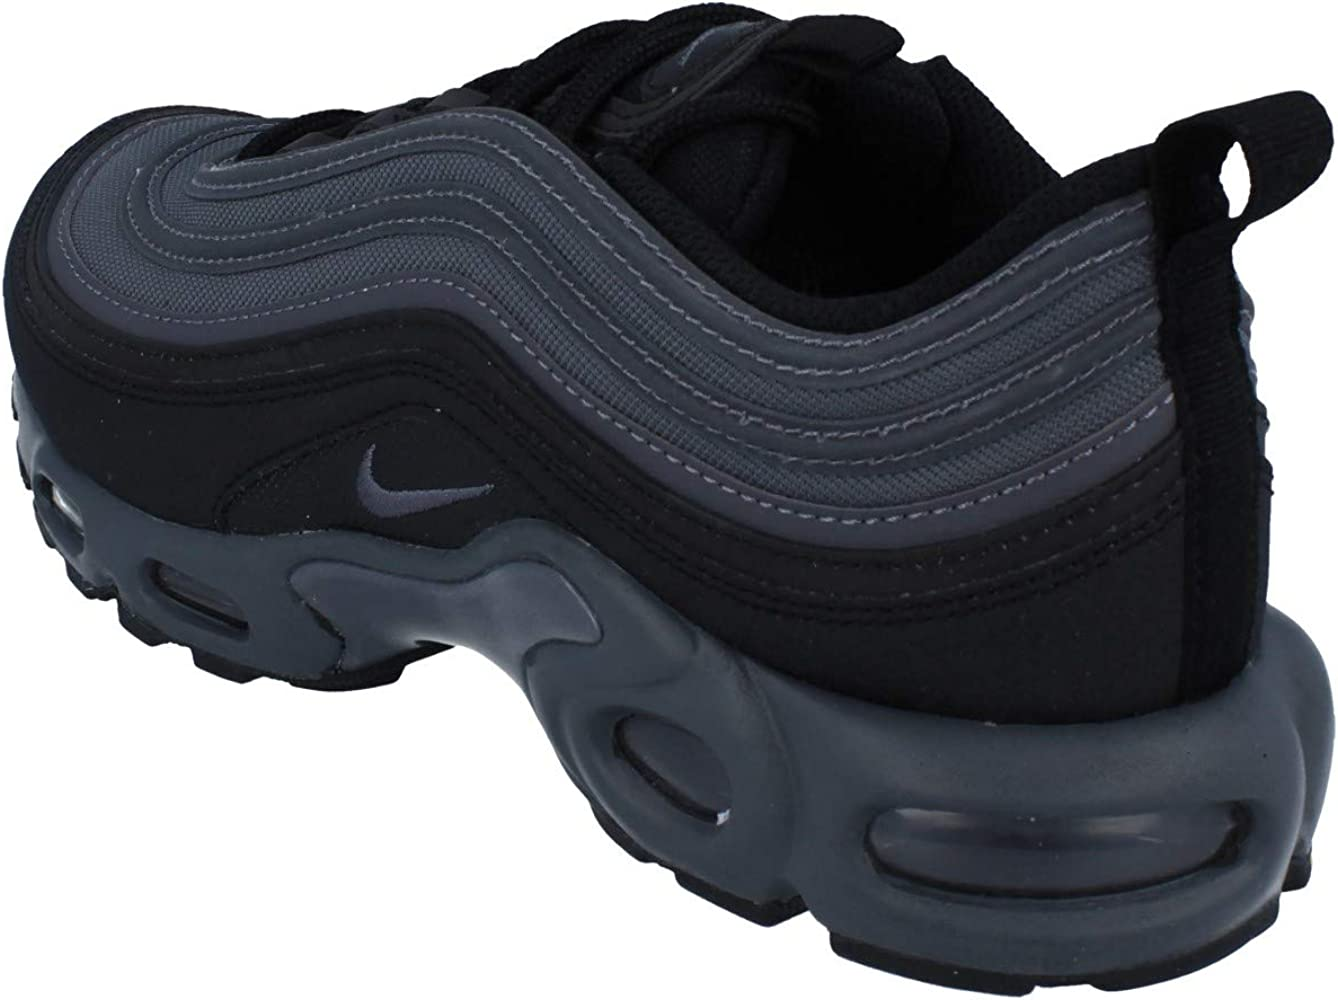 Nike Air MAX Plus 97 Hombre Running Trainers CD7859